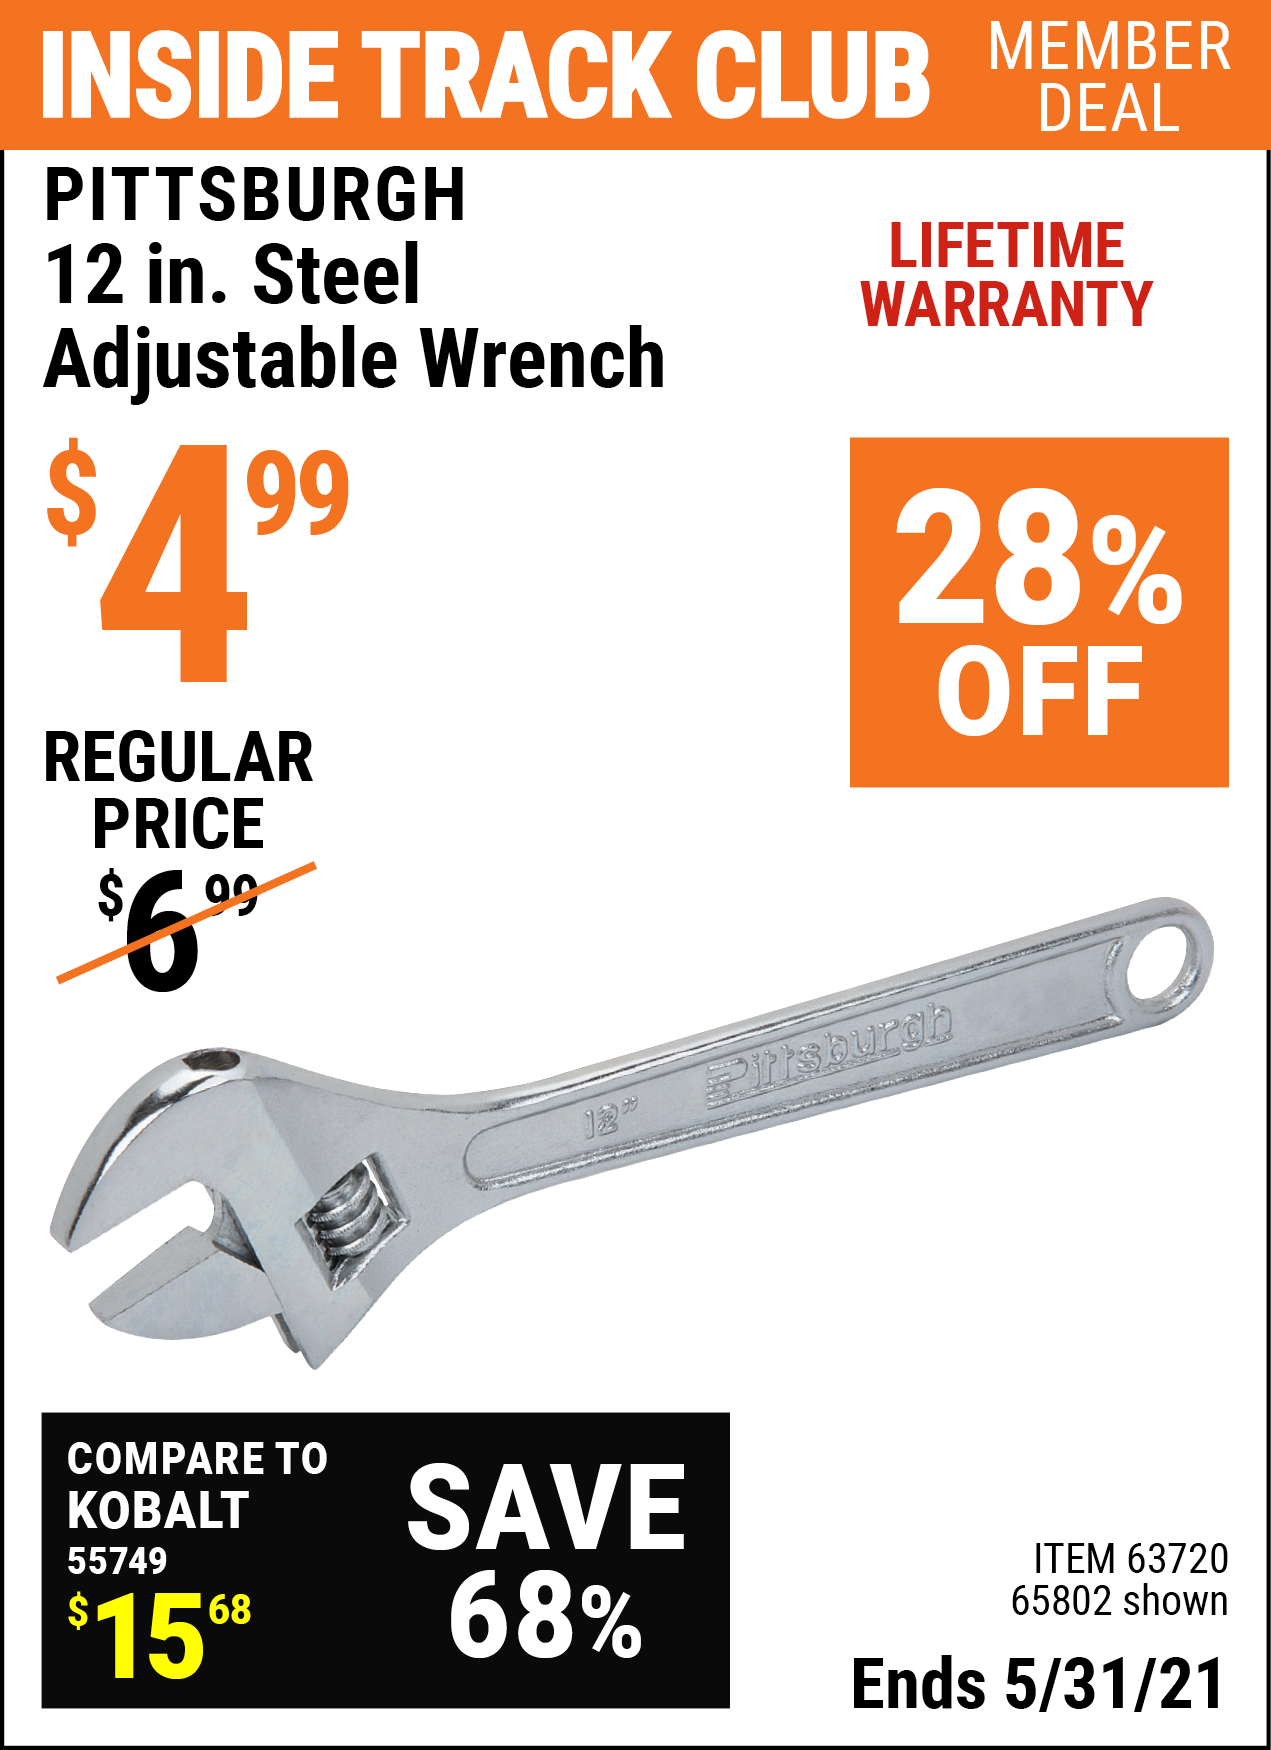 Inside Track Club members can buy the PITTSBURGH 12 in. Steel Adjustable Wrench (Item 65802/63720) for $4.99, valid through 5/31/2021.